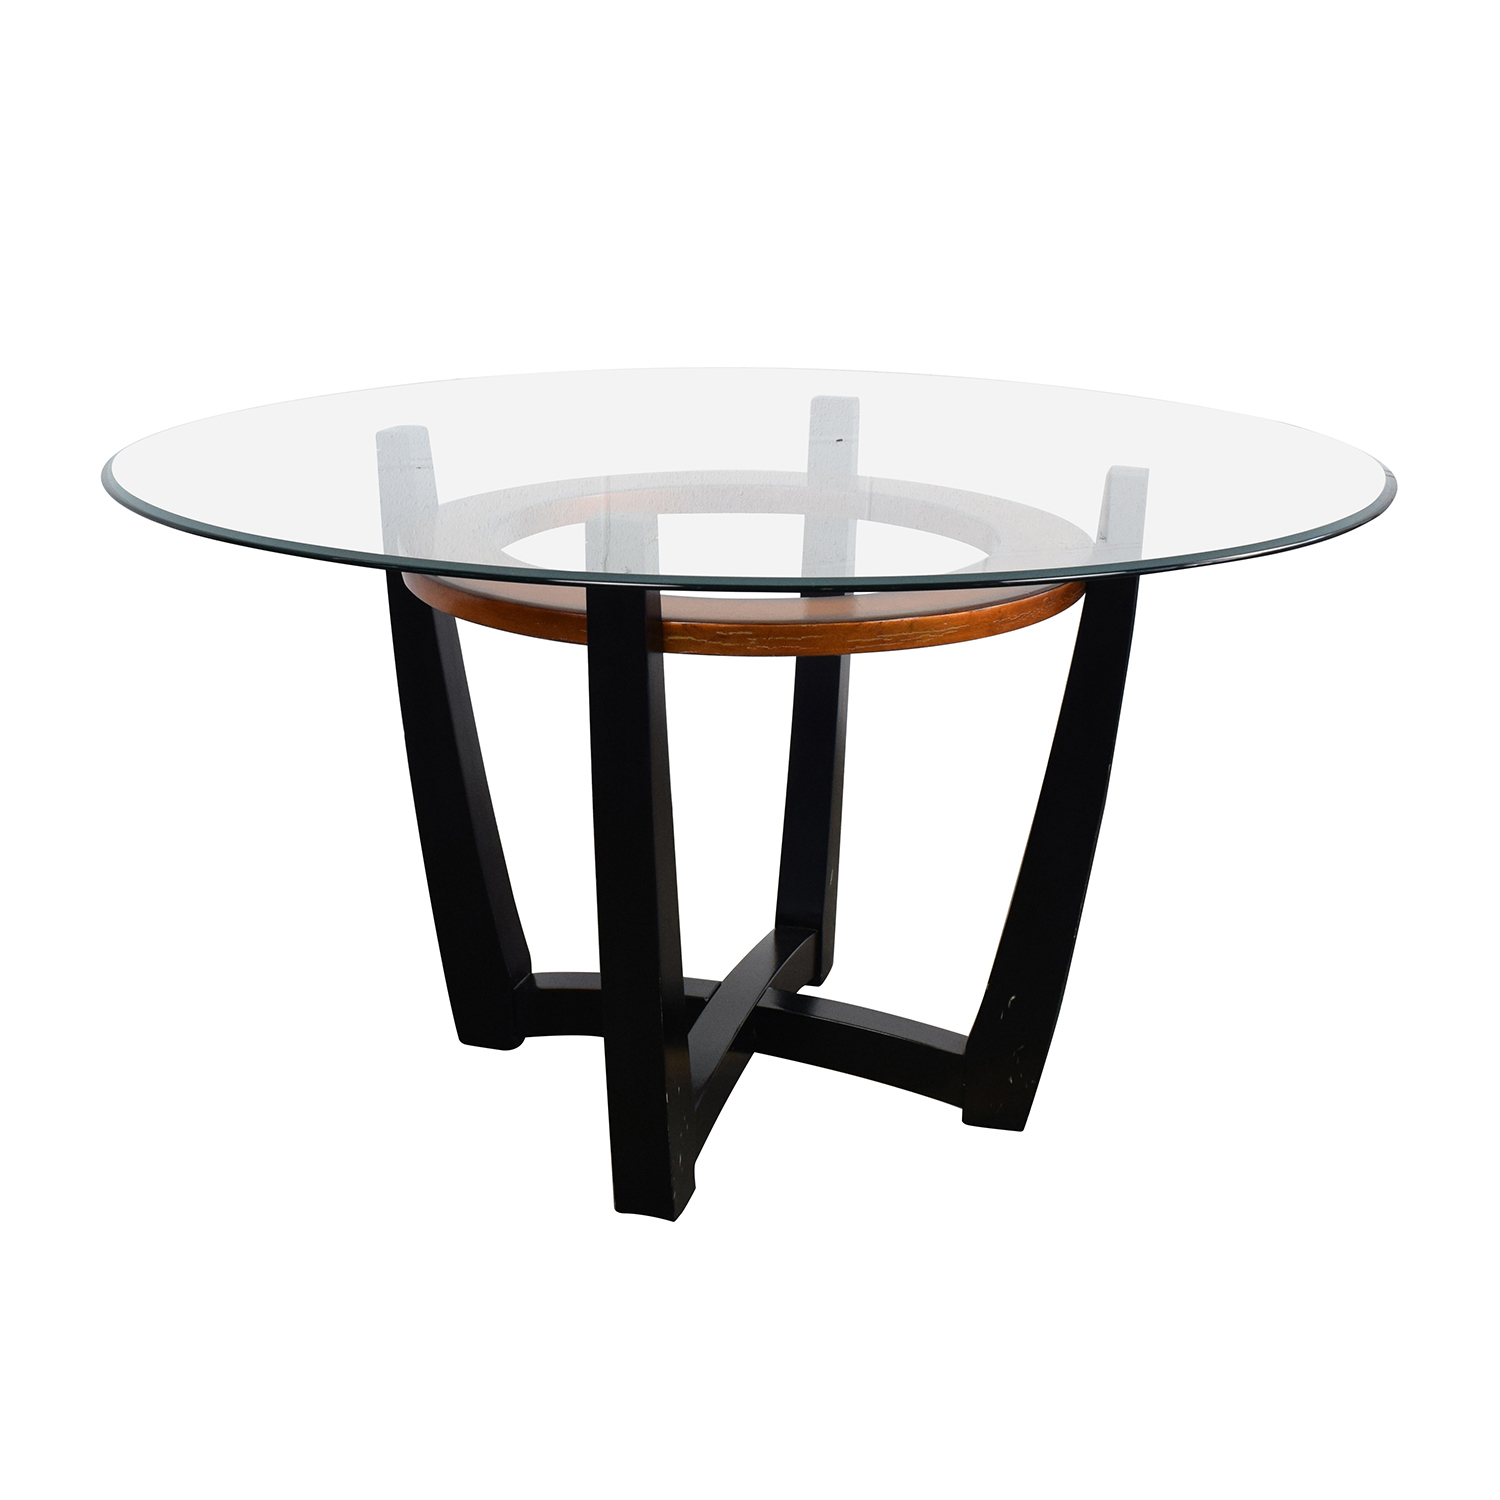 88 off macy 39 s macy 39 s elation round glass dining table Glass dining table